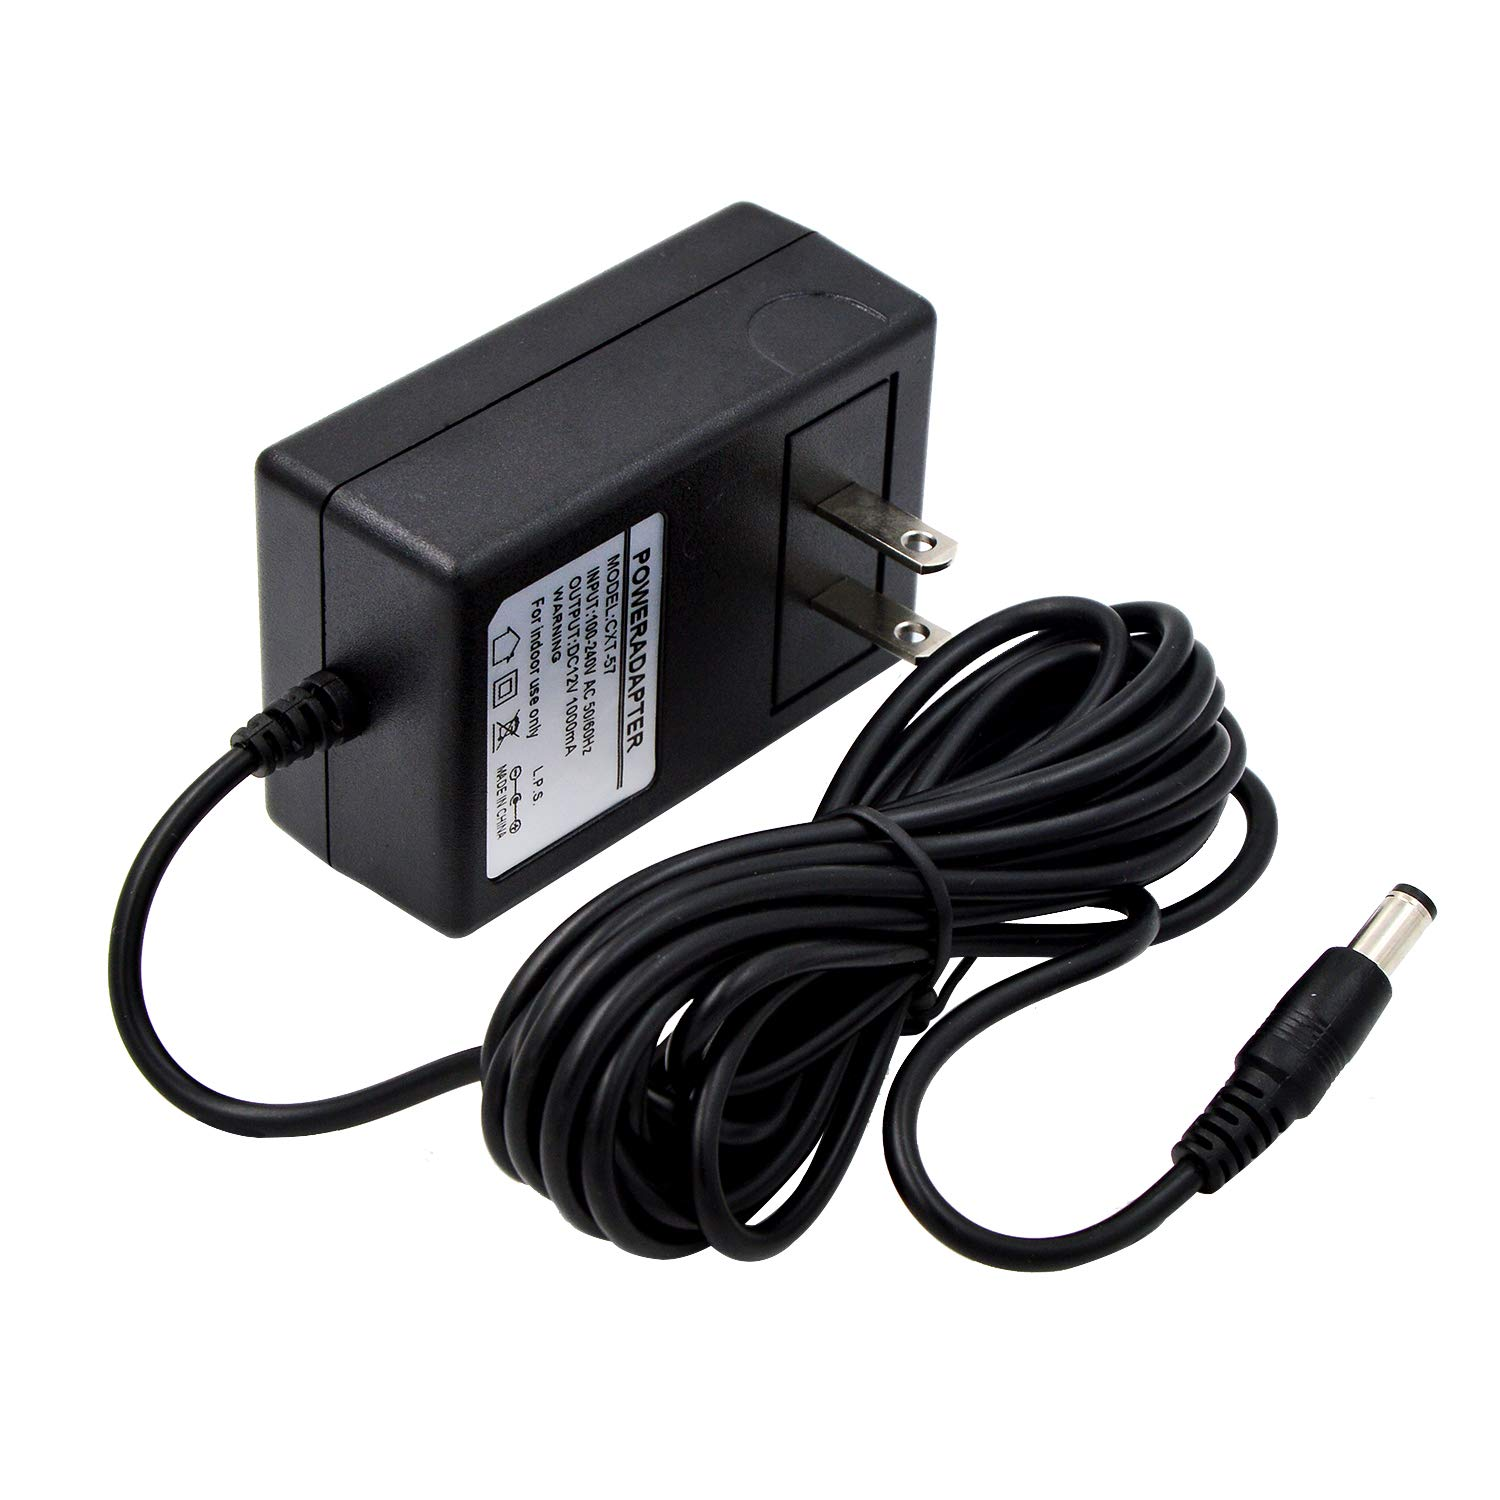 Universal 9.8 Ft 12V 1A Power Supply AC Adapter for Yamaha PSR, YPG, YPT, DGX, DD, EZ and P digital piano and portable Keyboard series (PA130 PSR-E403 and below YPT-400 and below, EZ-200 and EZ-AG)